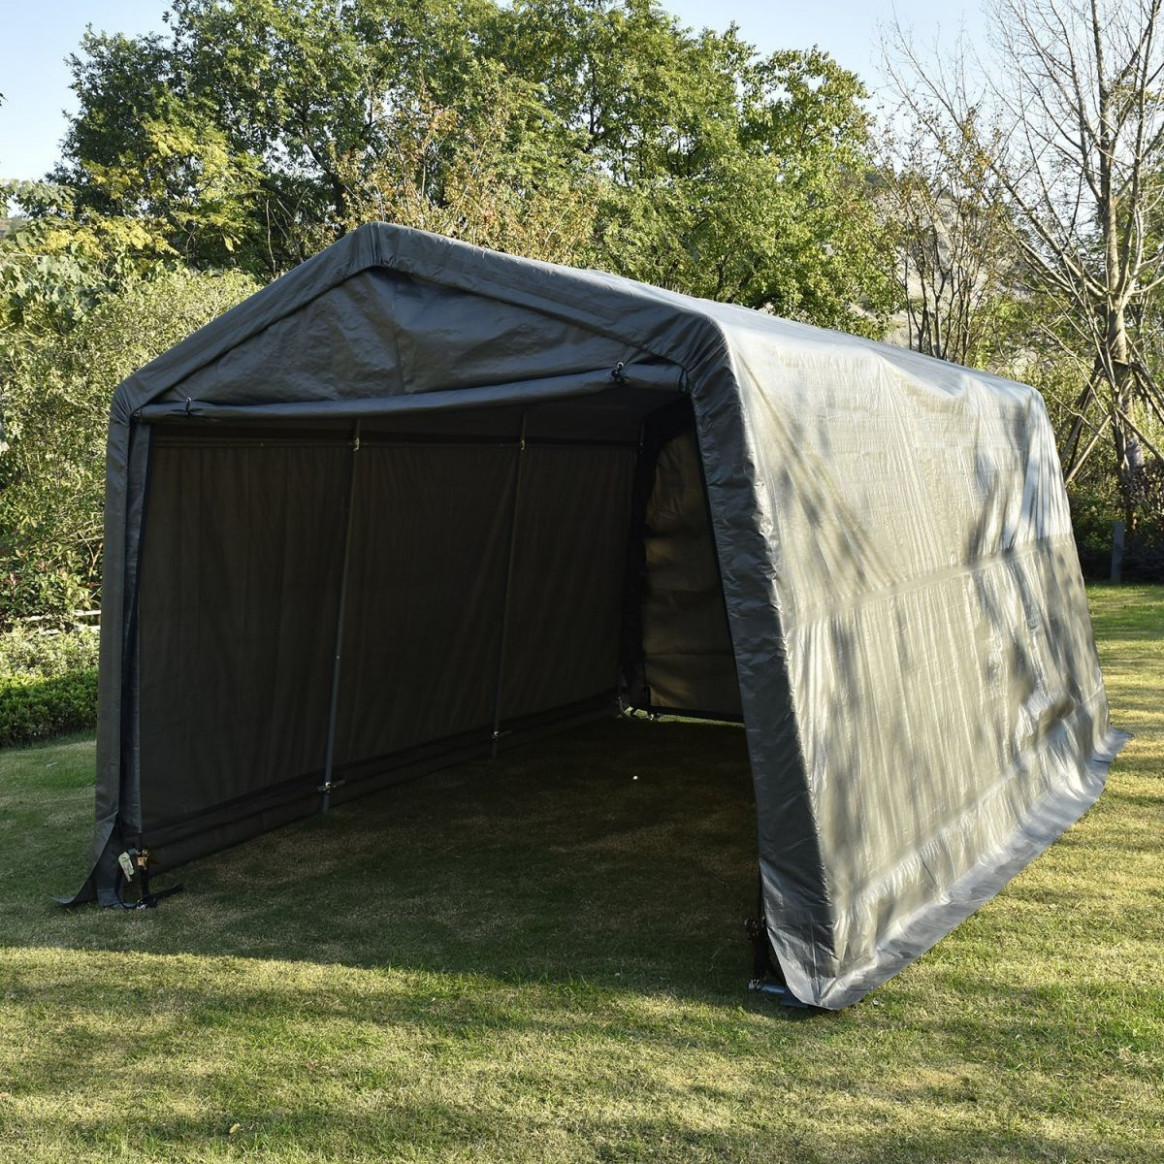 11 Portable Carport Shelters To Take Care Of Your Car Carport Canopy Snow